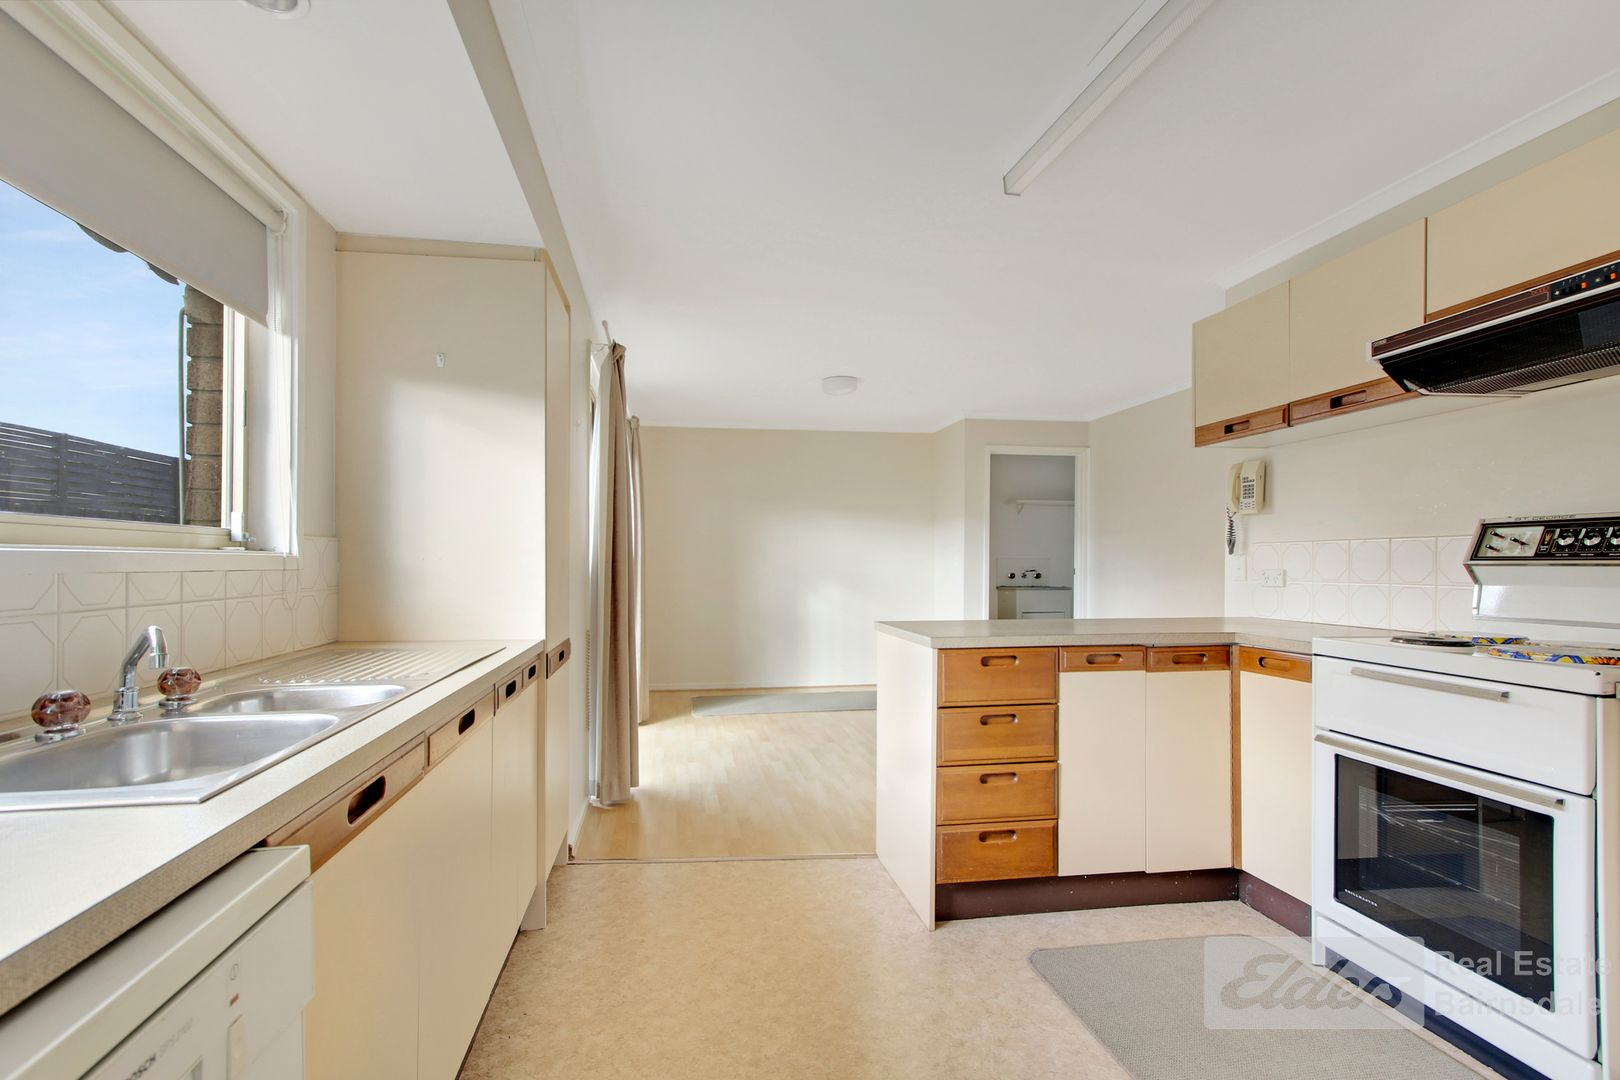 3/104 Wallace  Street, Bairnsdale VIC 3875, Image 2